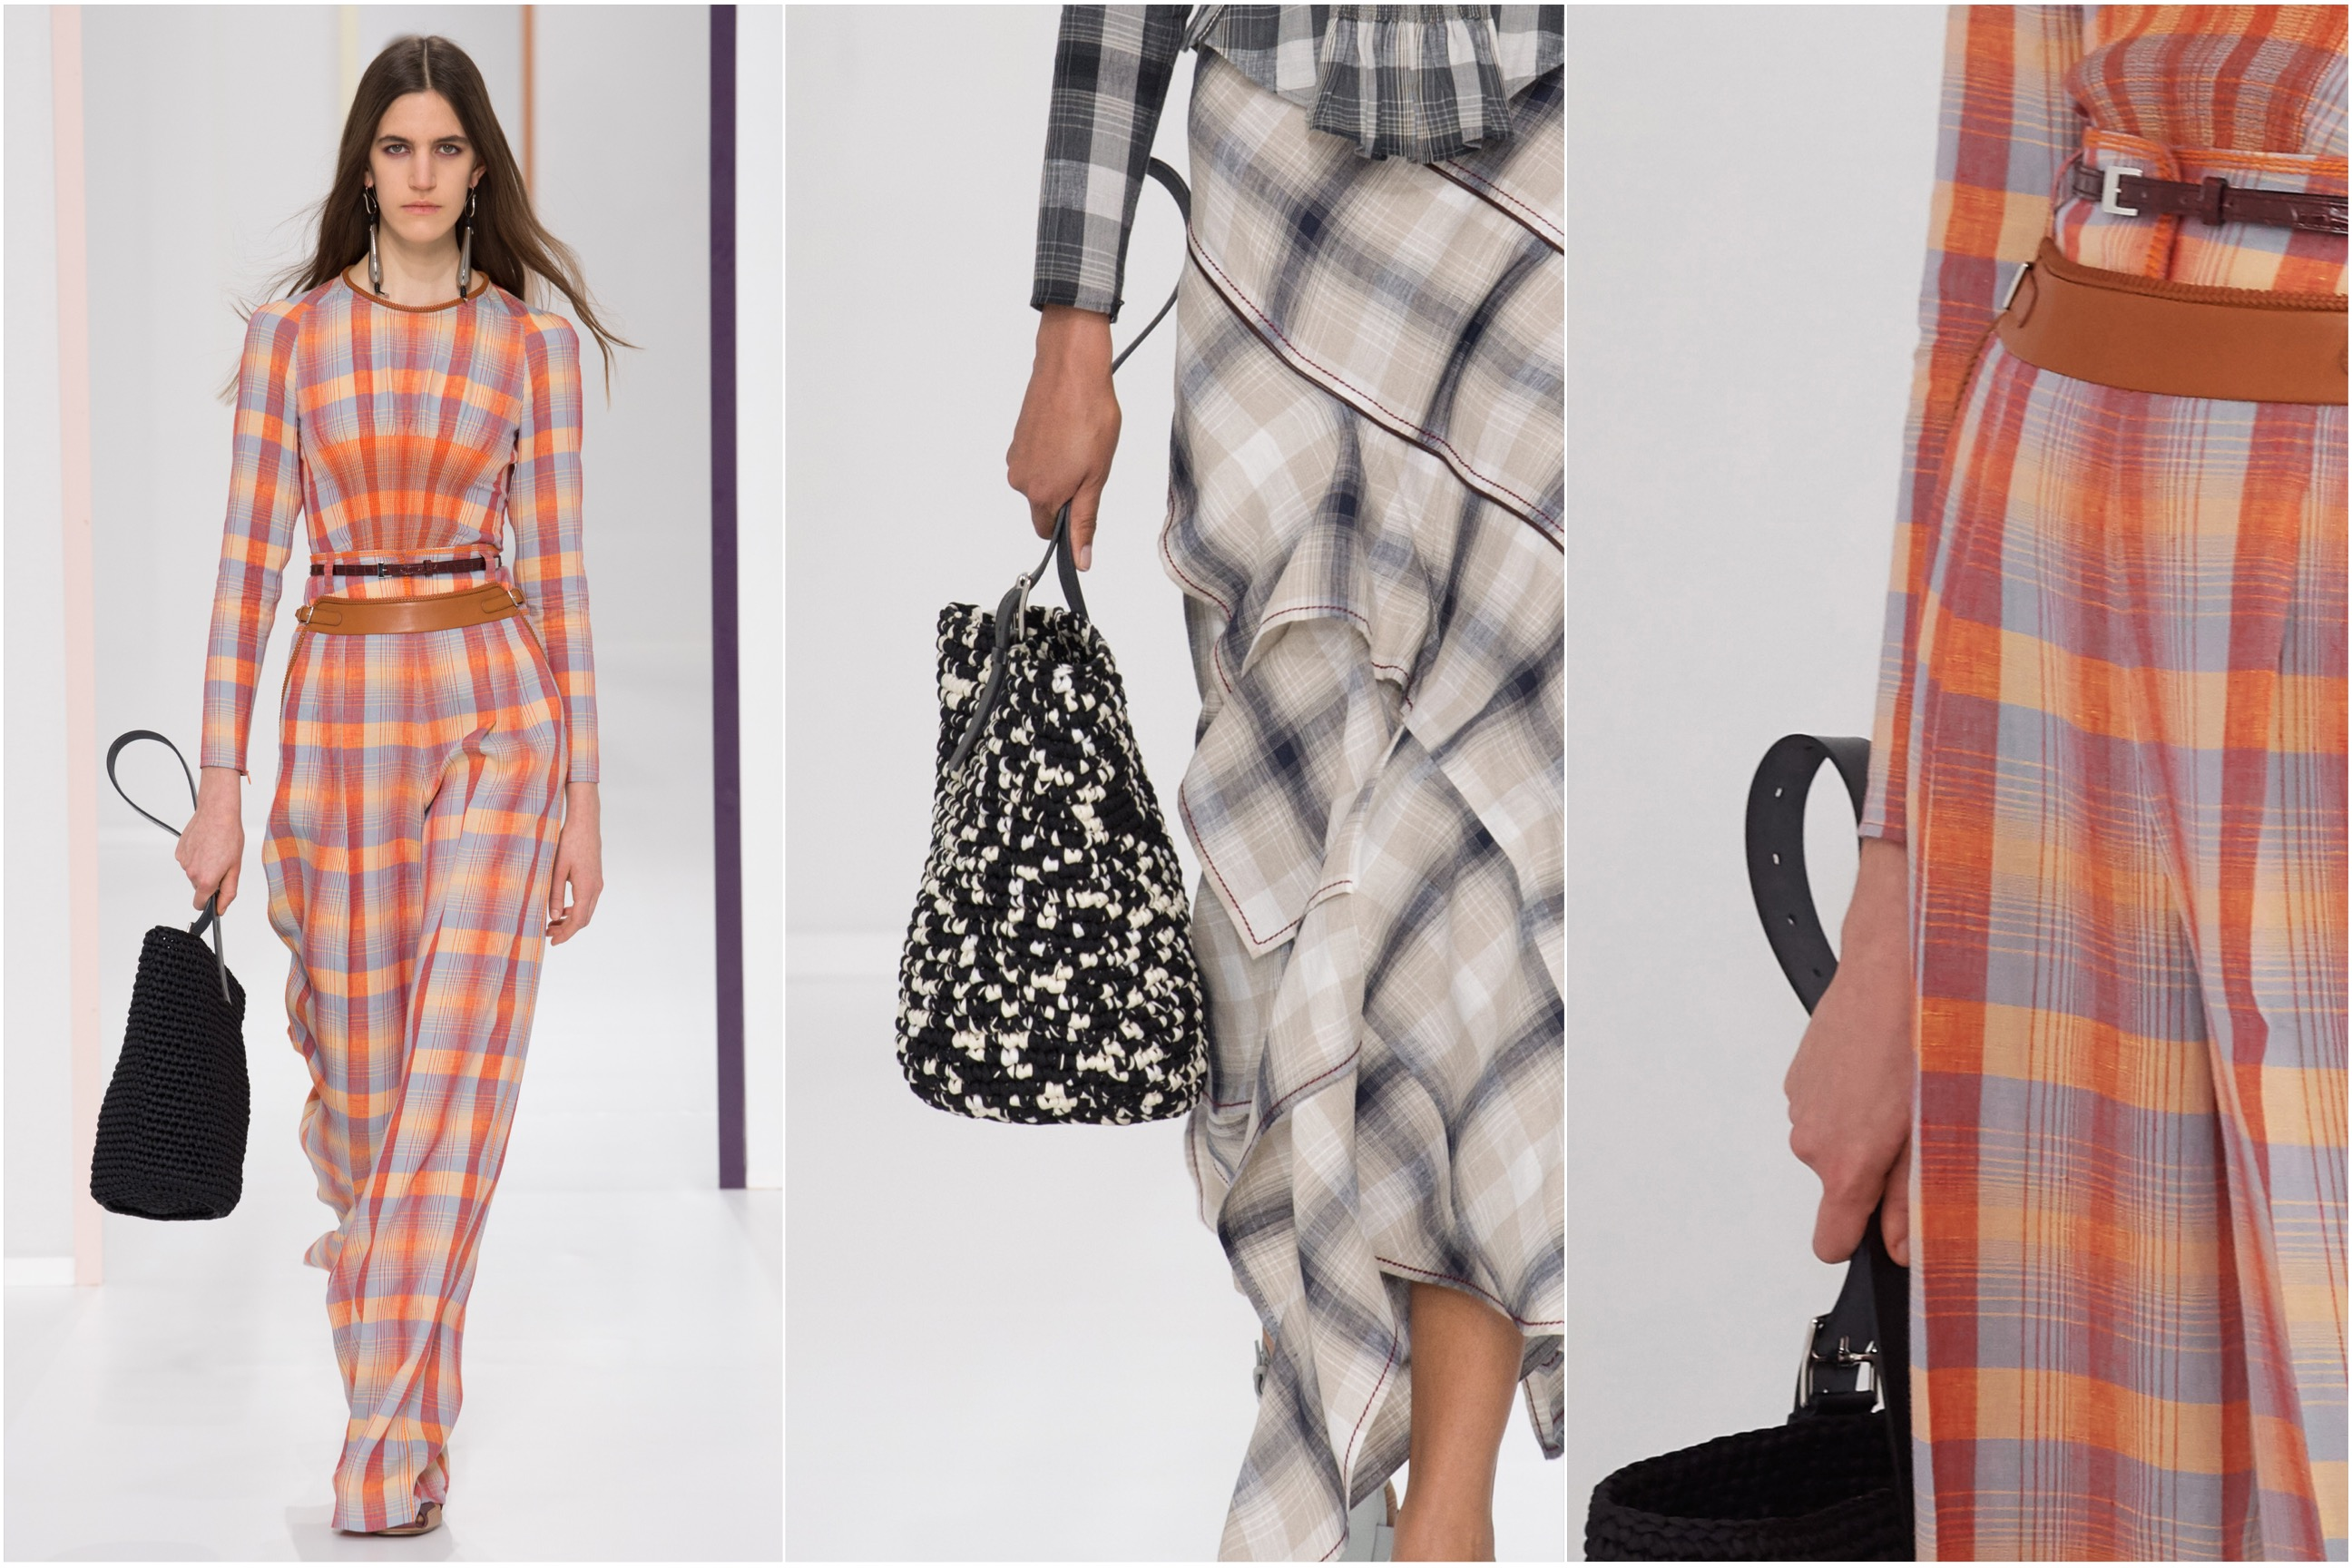 0bbce5fef2 Reproportioned  We had a sneak peek at the Hermès 2002 bag in the Resort  collection. On the Spring runway